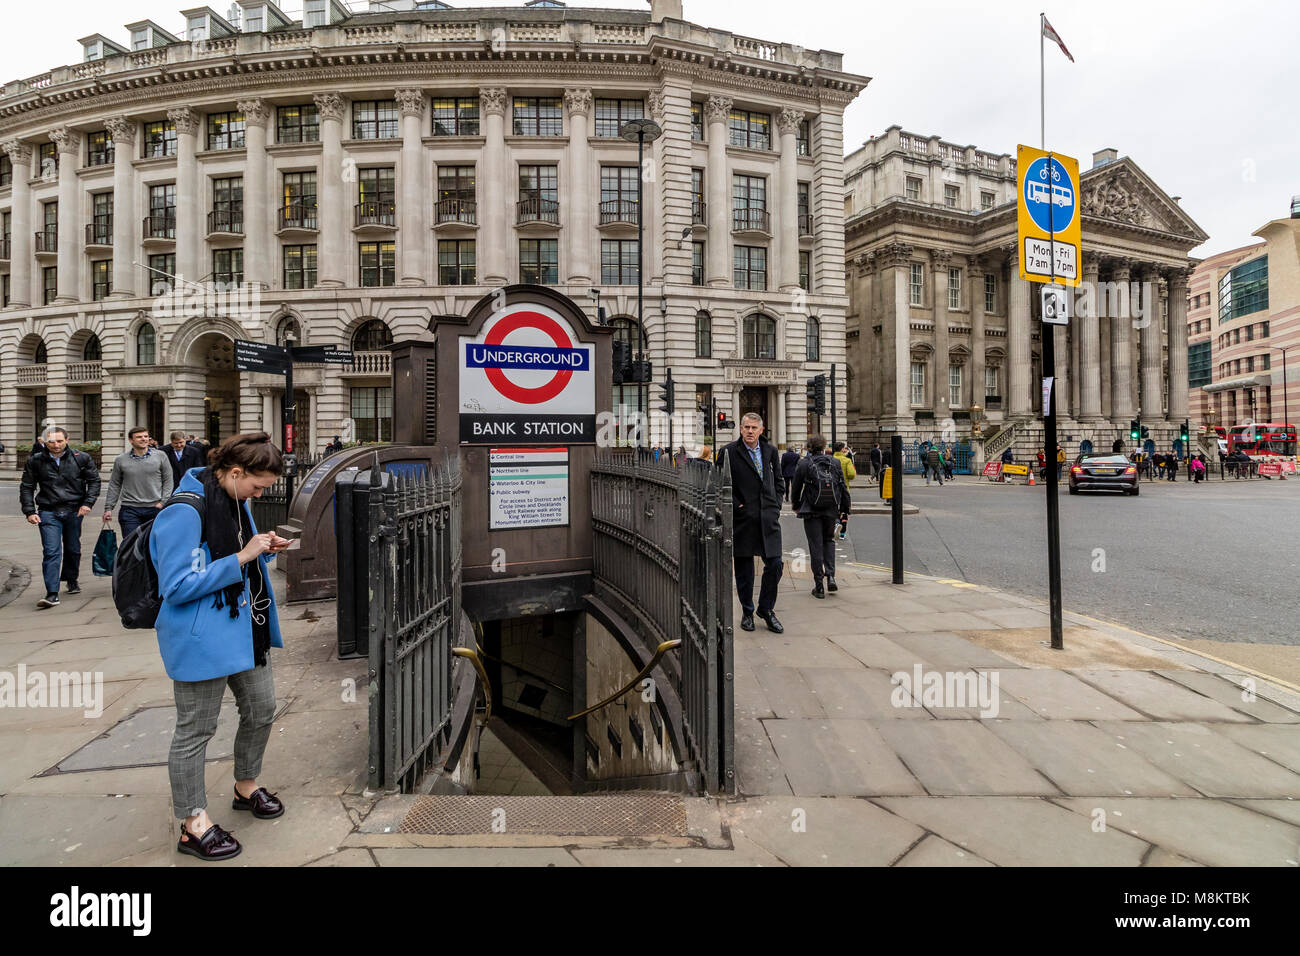 A woman checking her phone outside Bank Tube station entrance in The City Of London - Stock Image